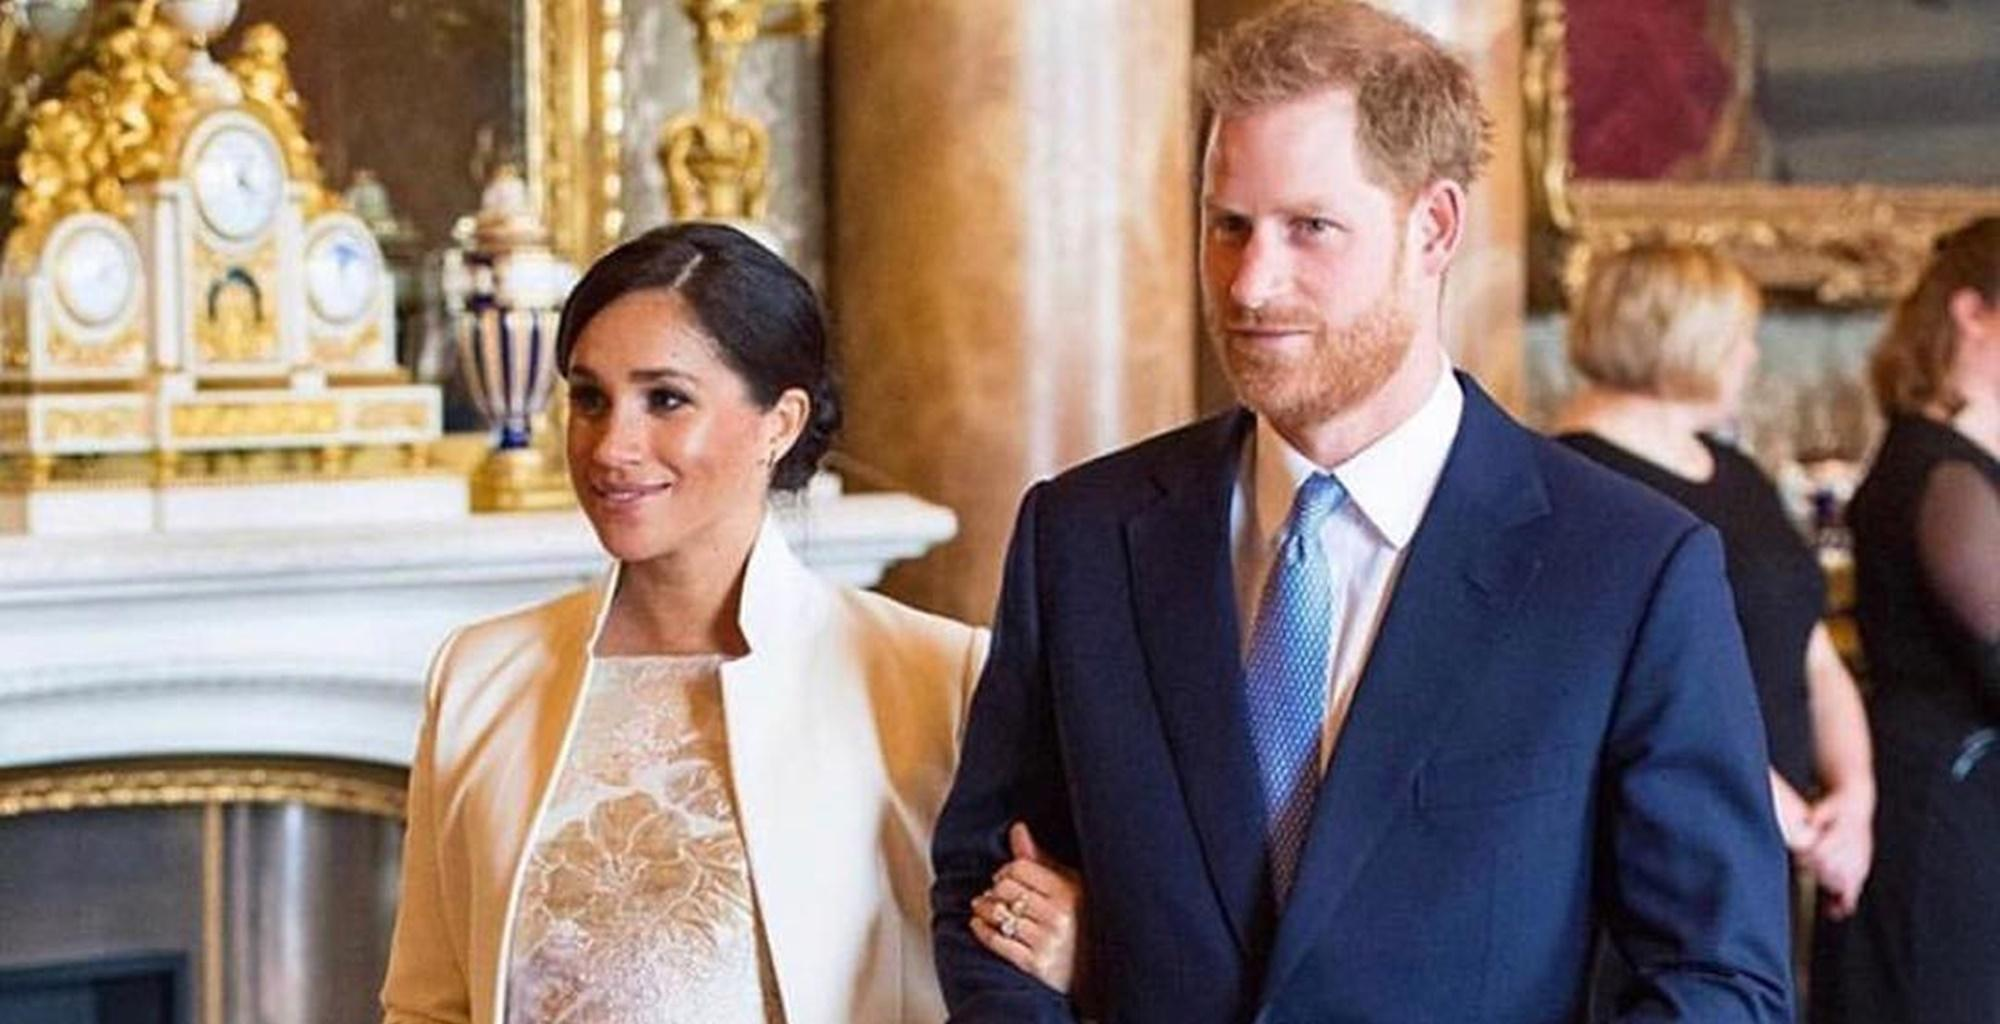 As Meghan Markle And Prince Harry Get Ready To Debut Their Baby Boy; Experts Wonder If He Can Calm Tensions With The Queen And Prince William